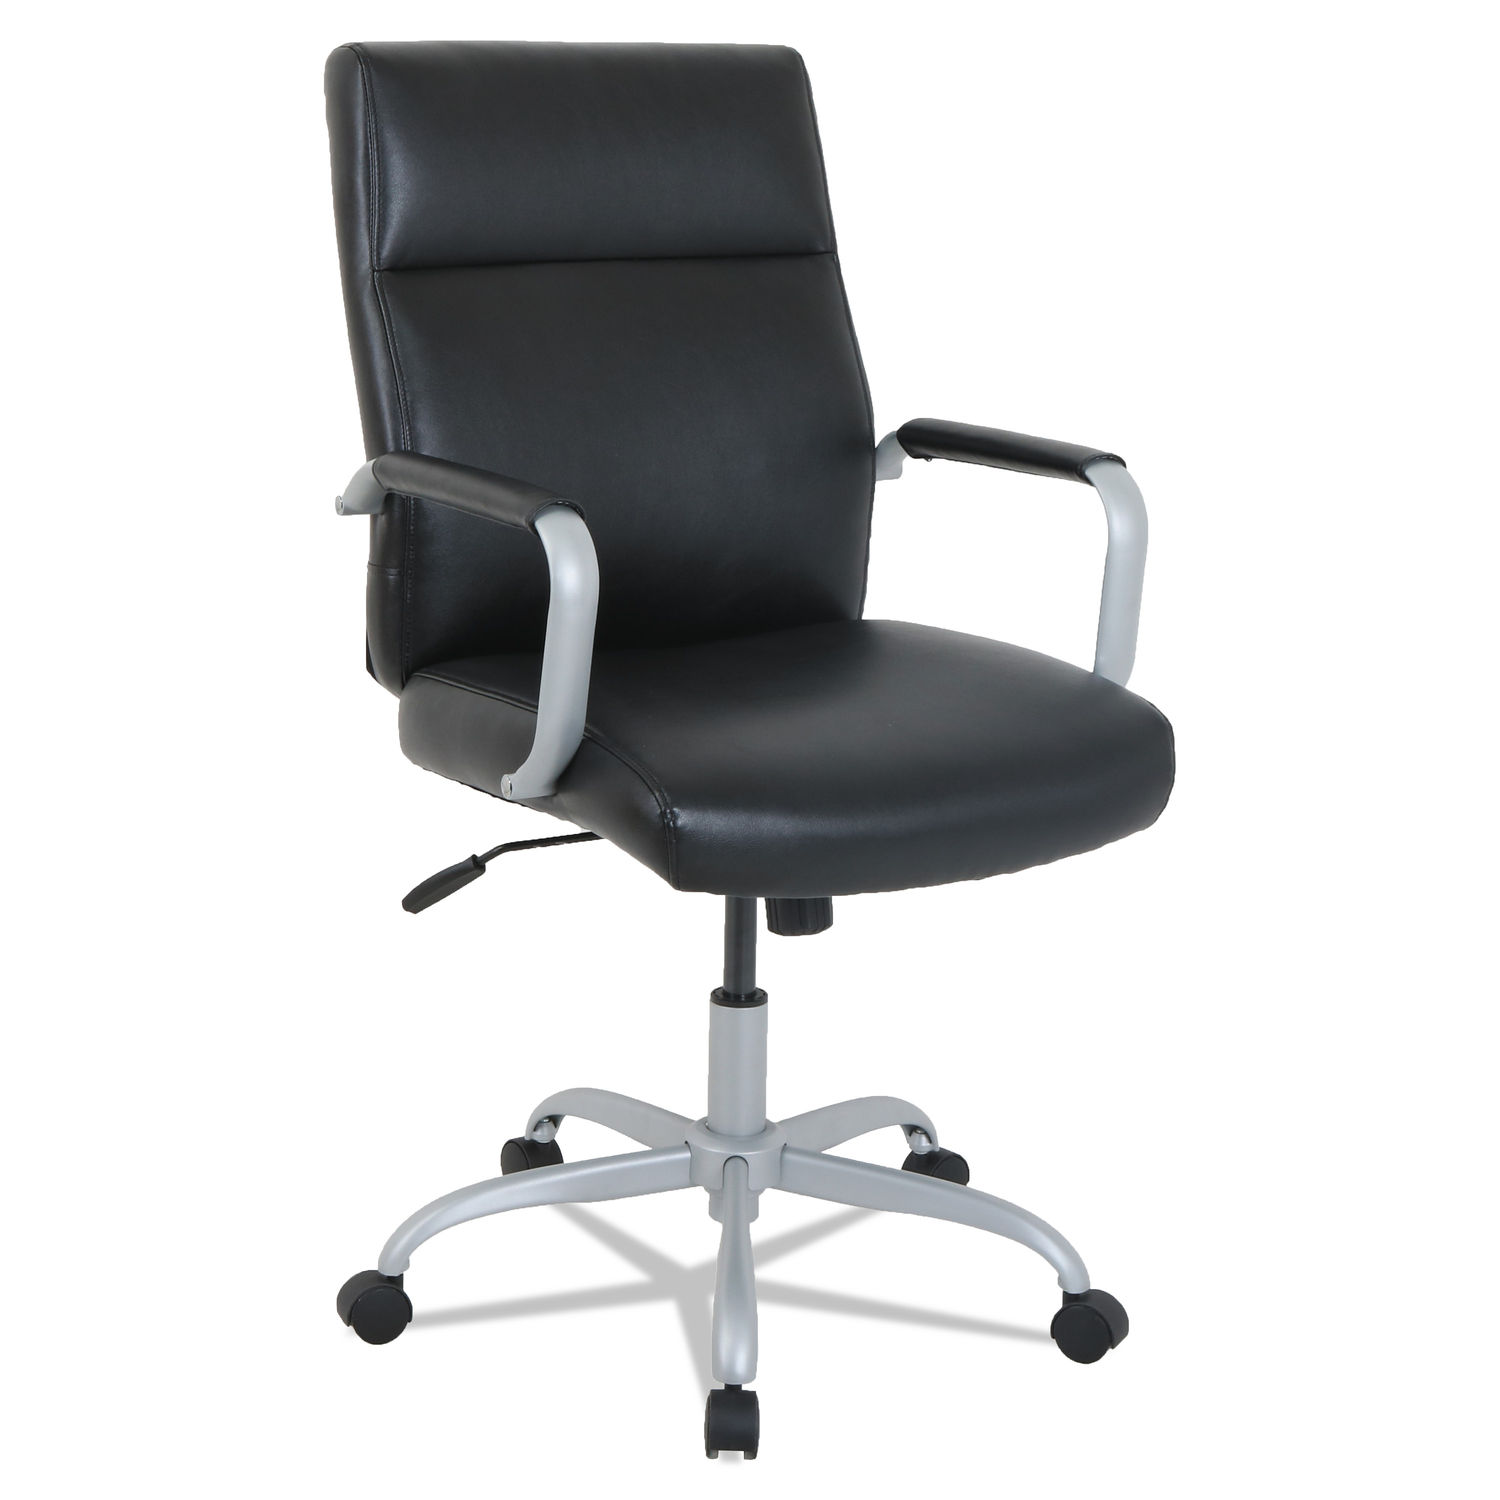 Awesome Alera Kathy Ireland Office By Alera Manitou Series High Back Leather Office Chair Alphanode Cool Chair Designs And Ideas Alphanodeonline